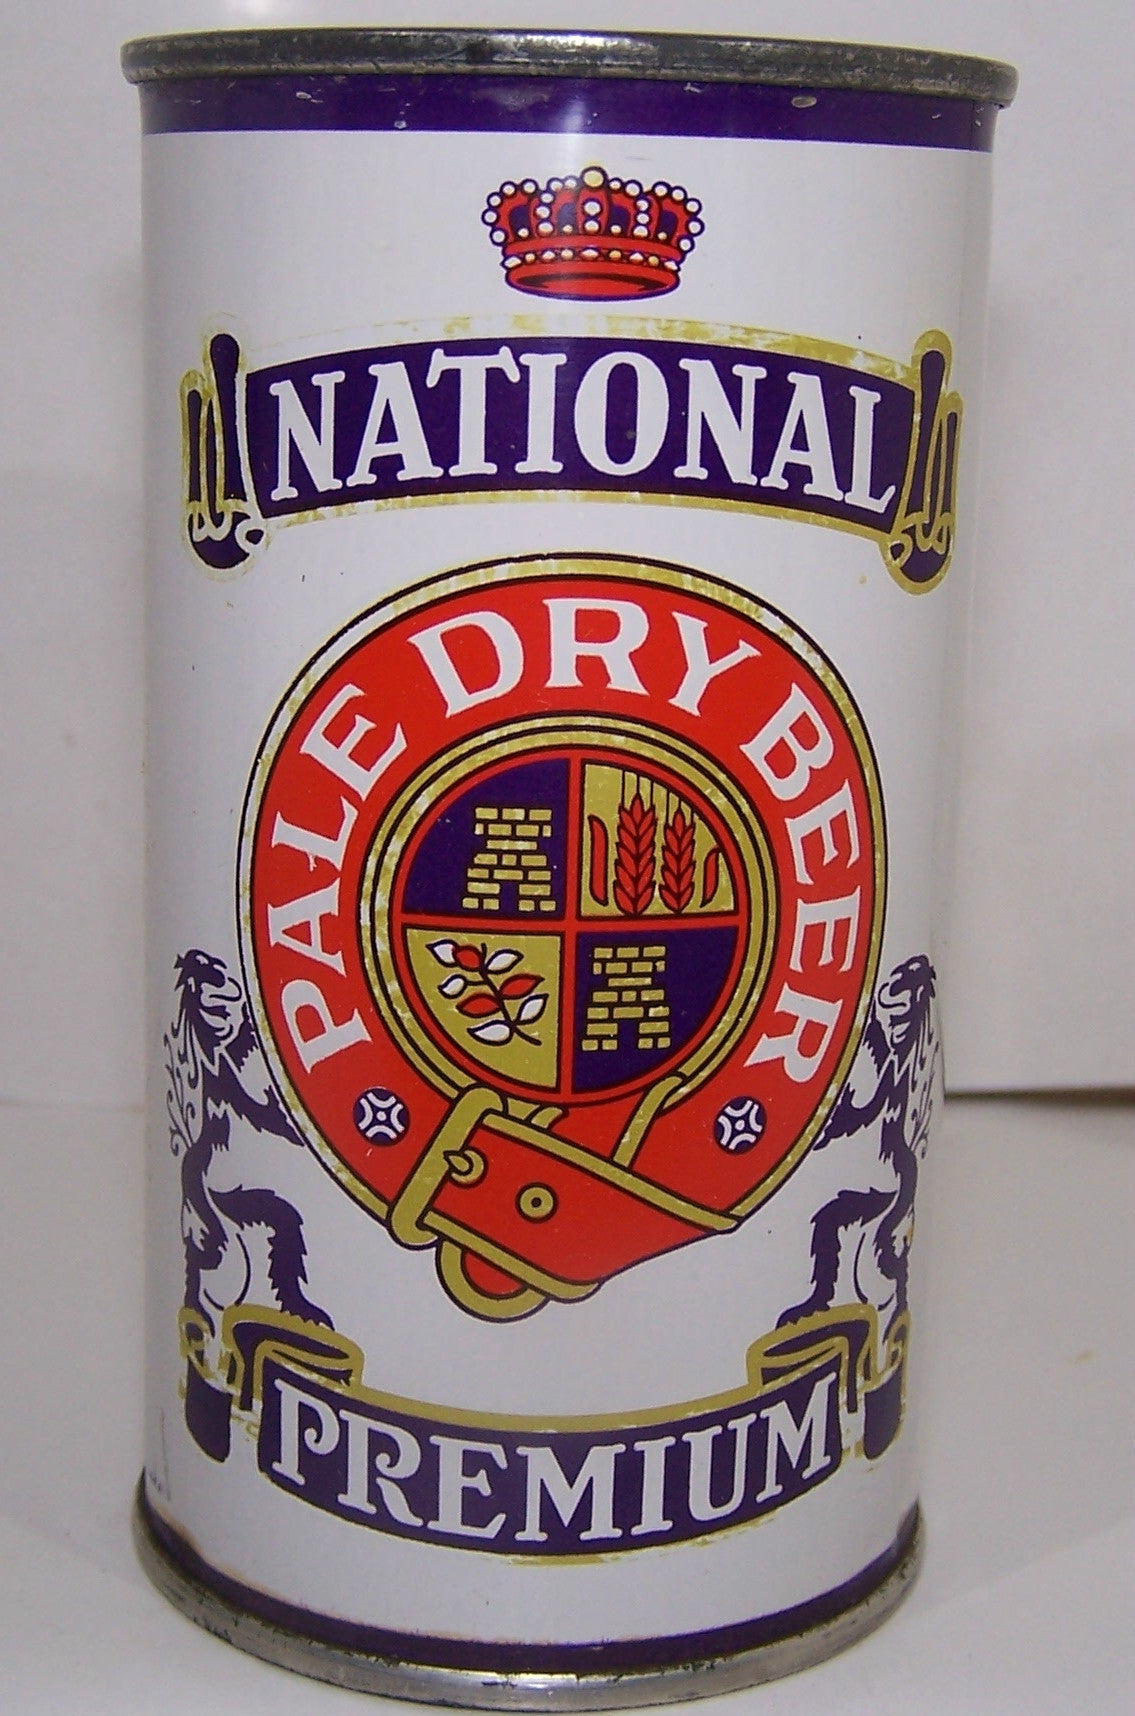 National Premium Pale Dry Beer, USBC 102-2, Grade 1/1+ Sold 1/23/15